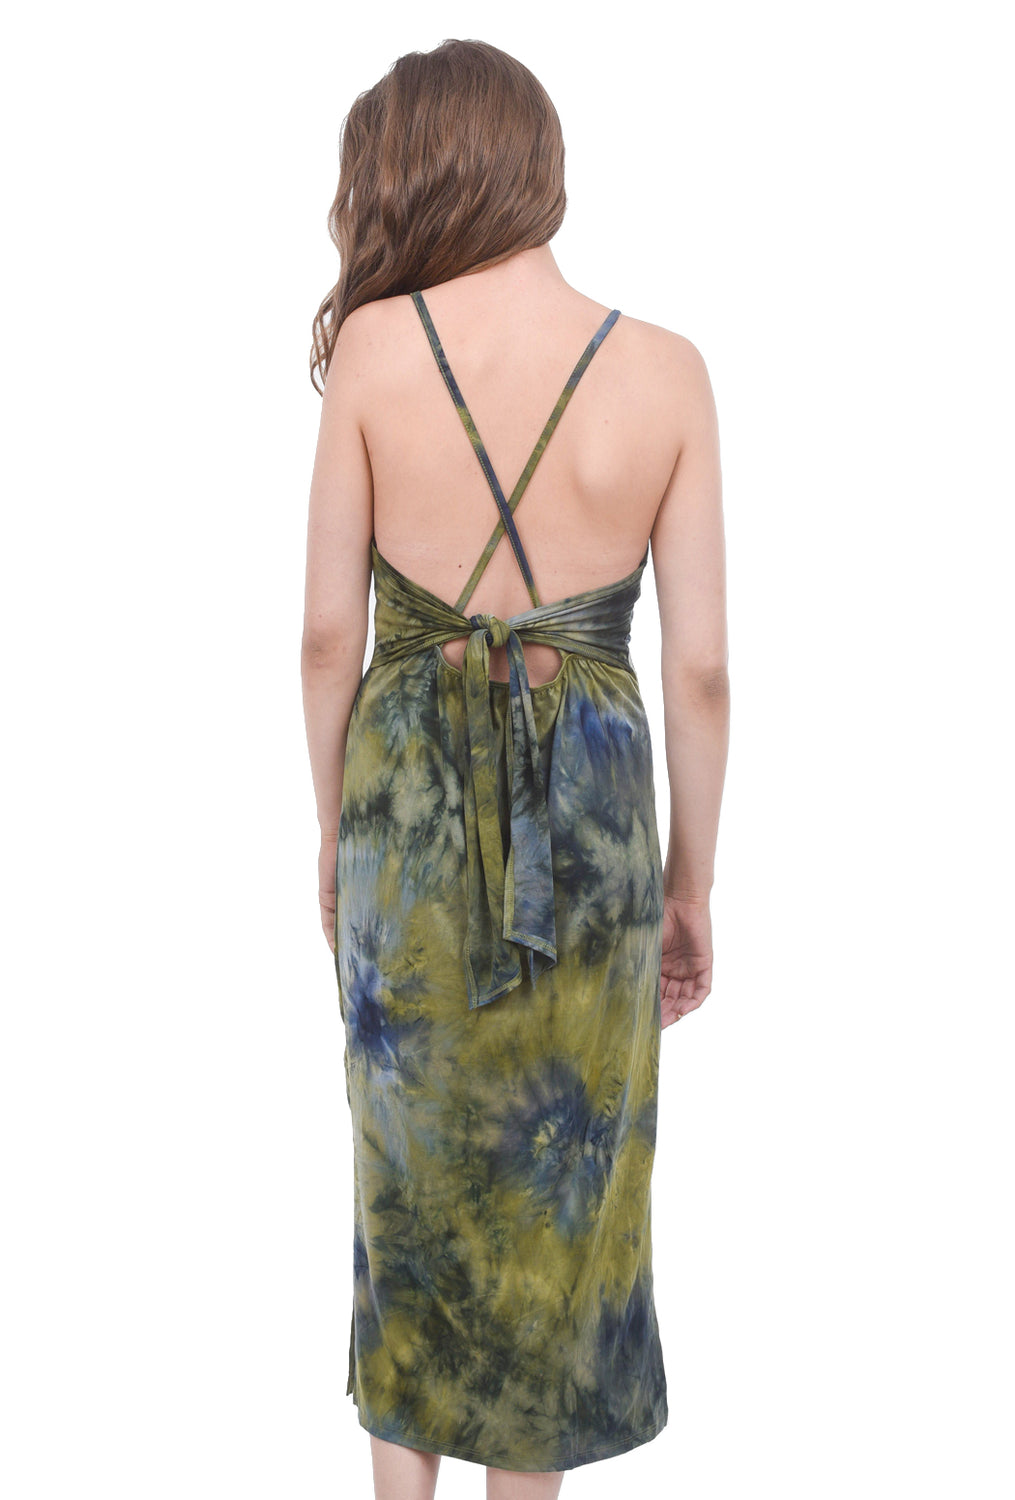 Coin1804 Sexy Softy Tie-Dye Dress, Olive